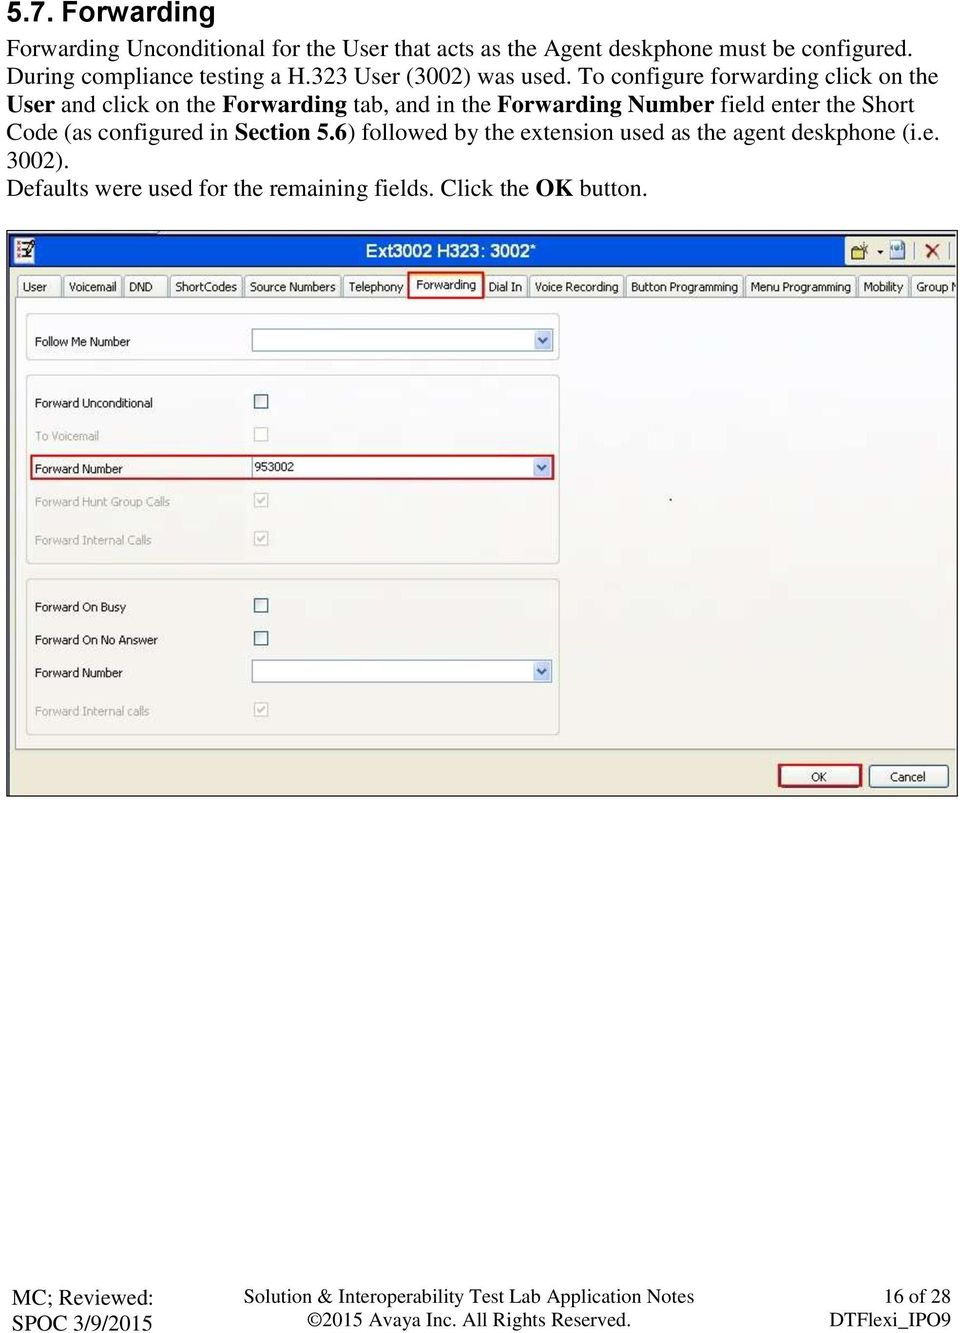 To configure forwarding click on the User and click on the Forwarding tab, and in the Forwarding Number field enter